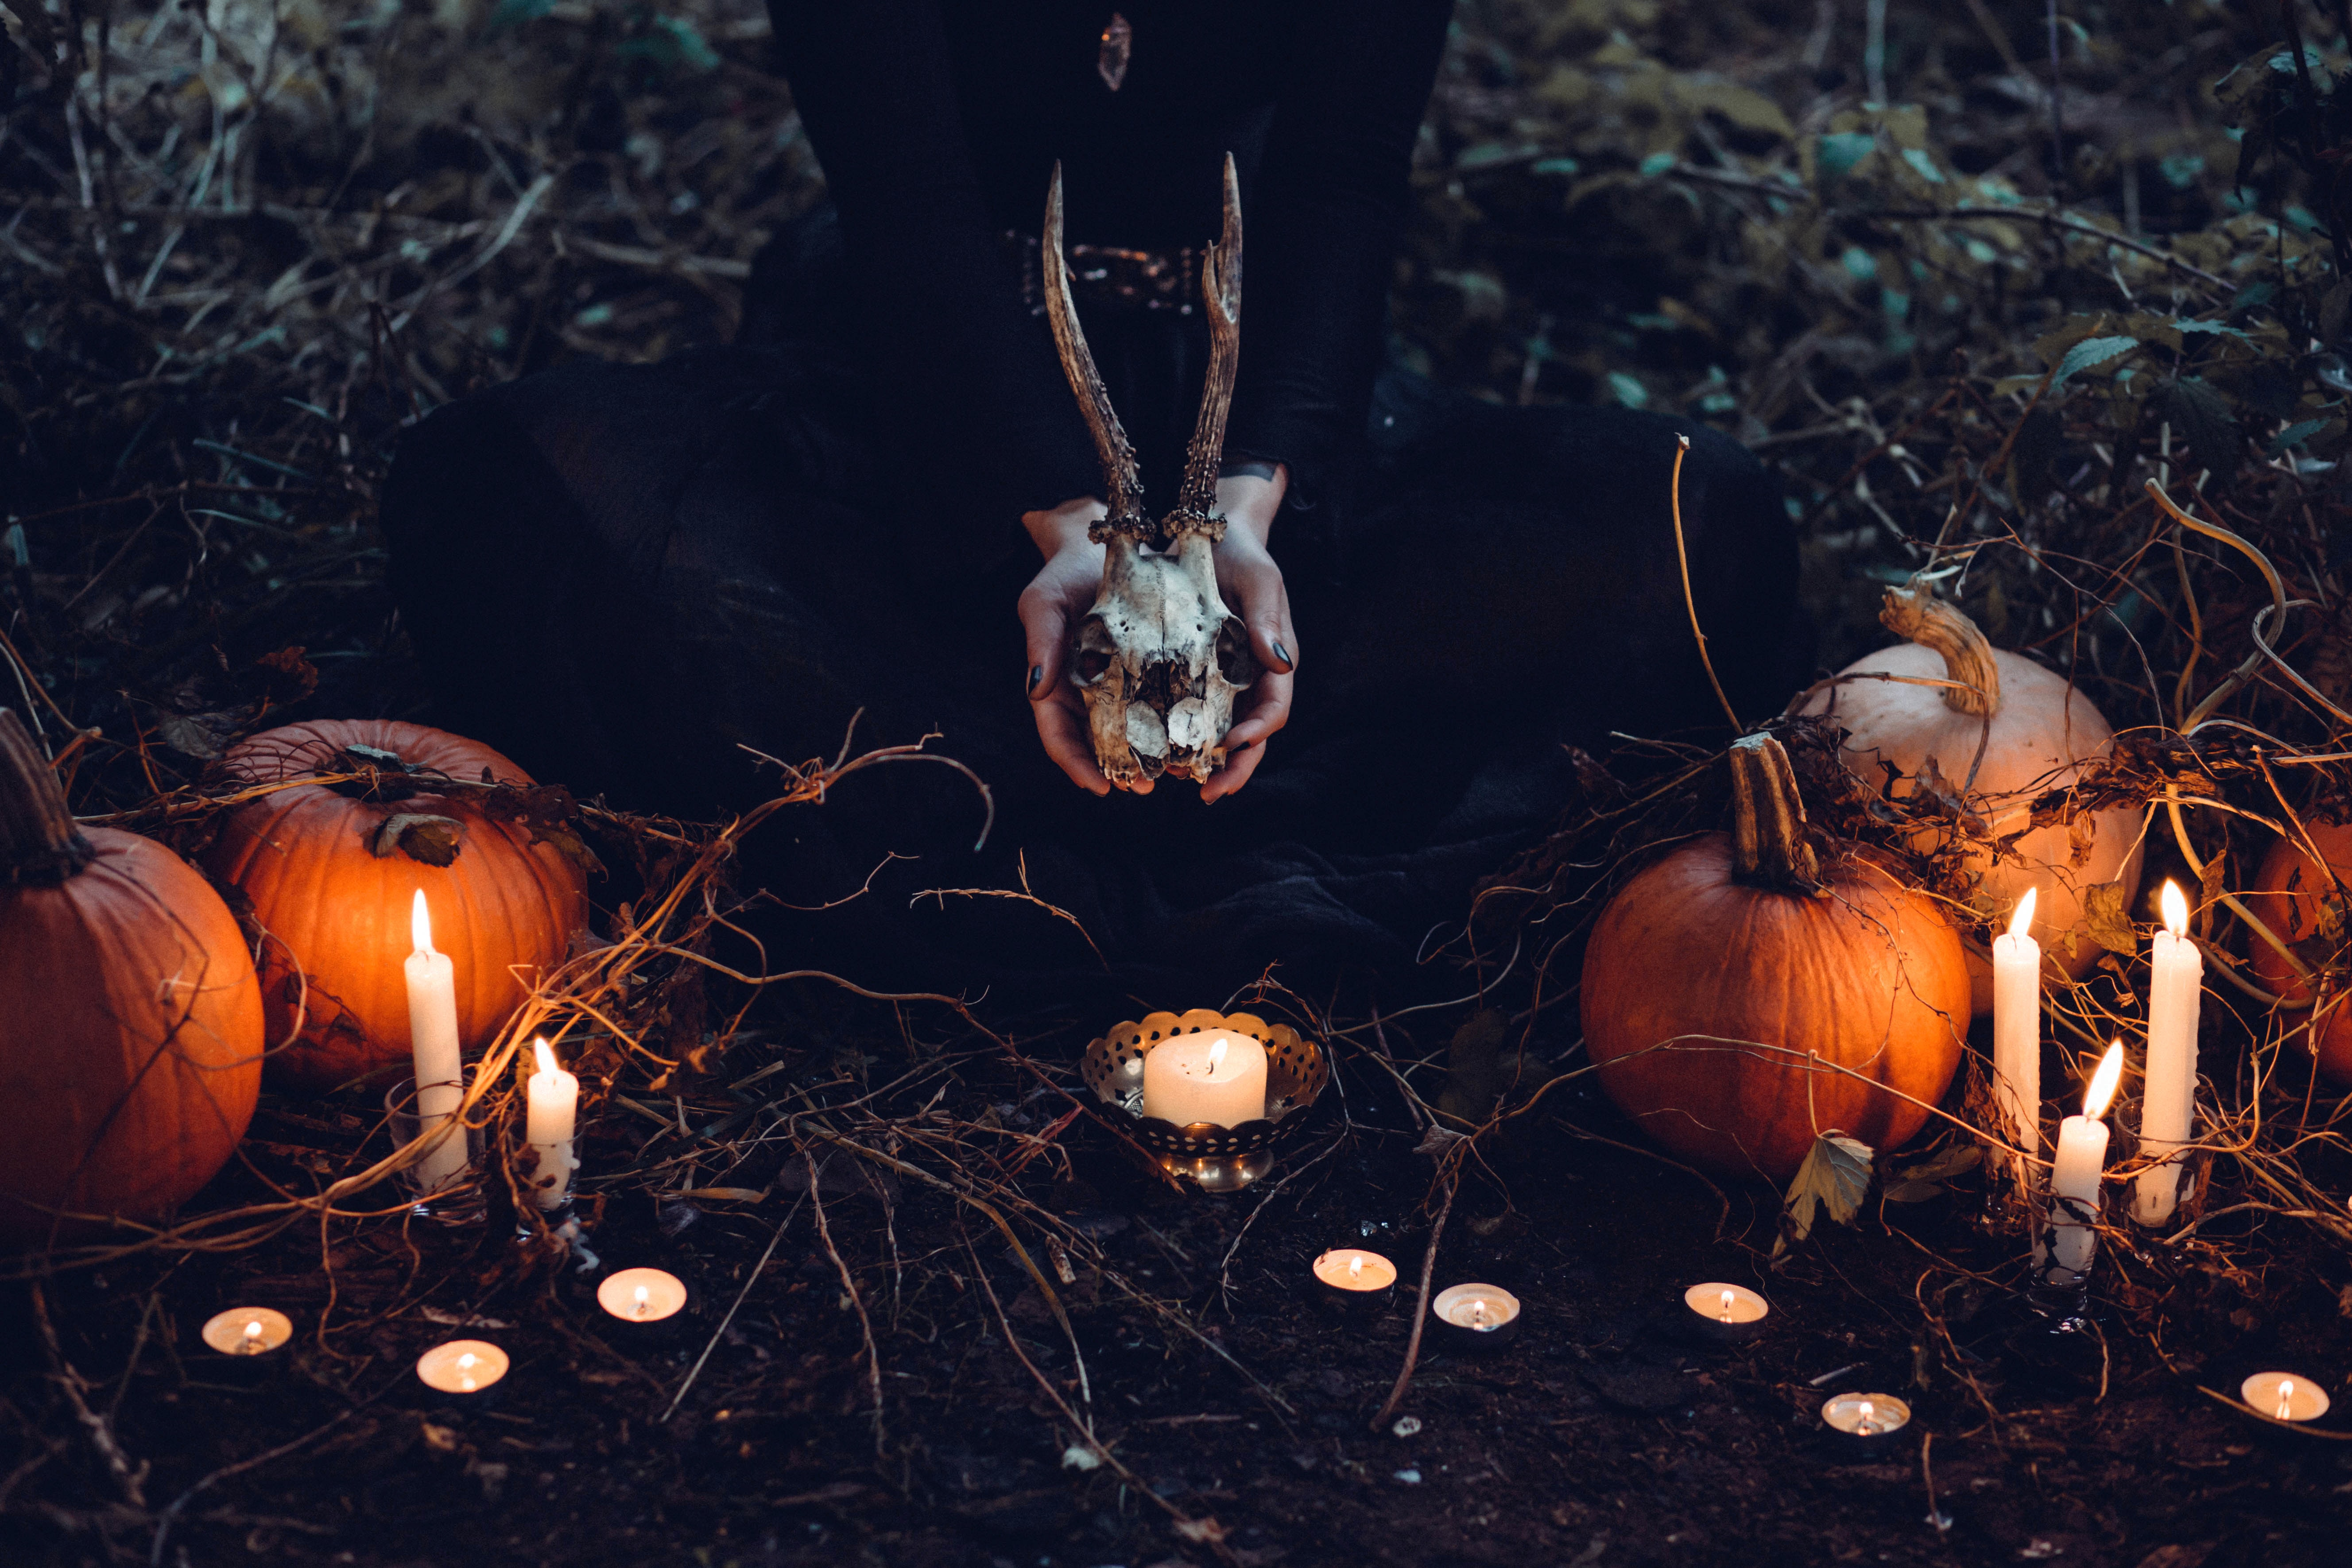 20 Creative Fall Photography Ideas - Creepy Halloween Pumpkins via freestocks.org | https://www.roseclearfield.com